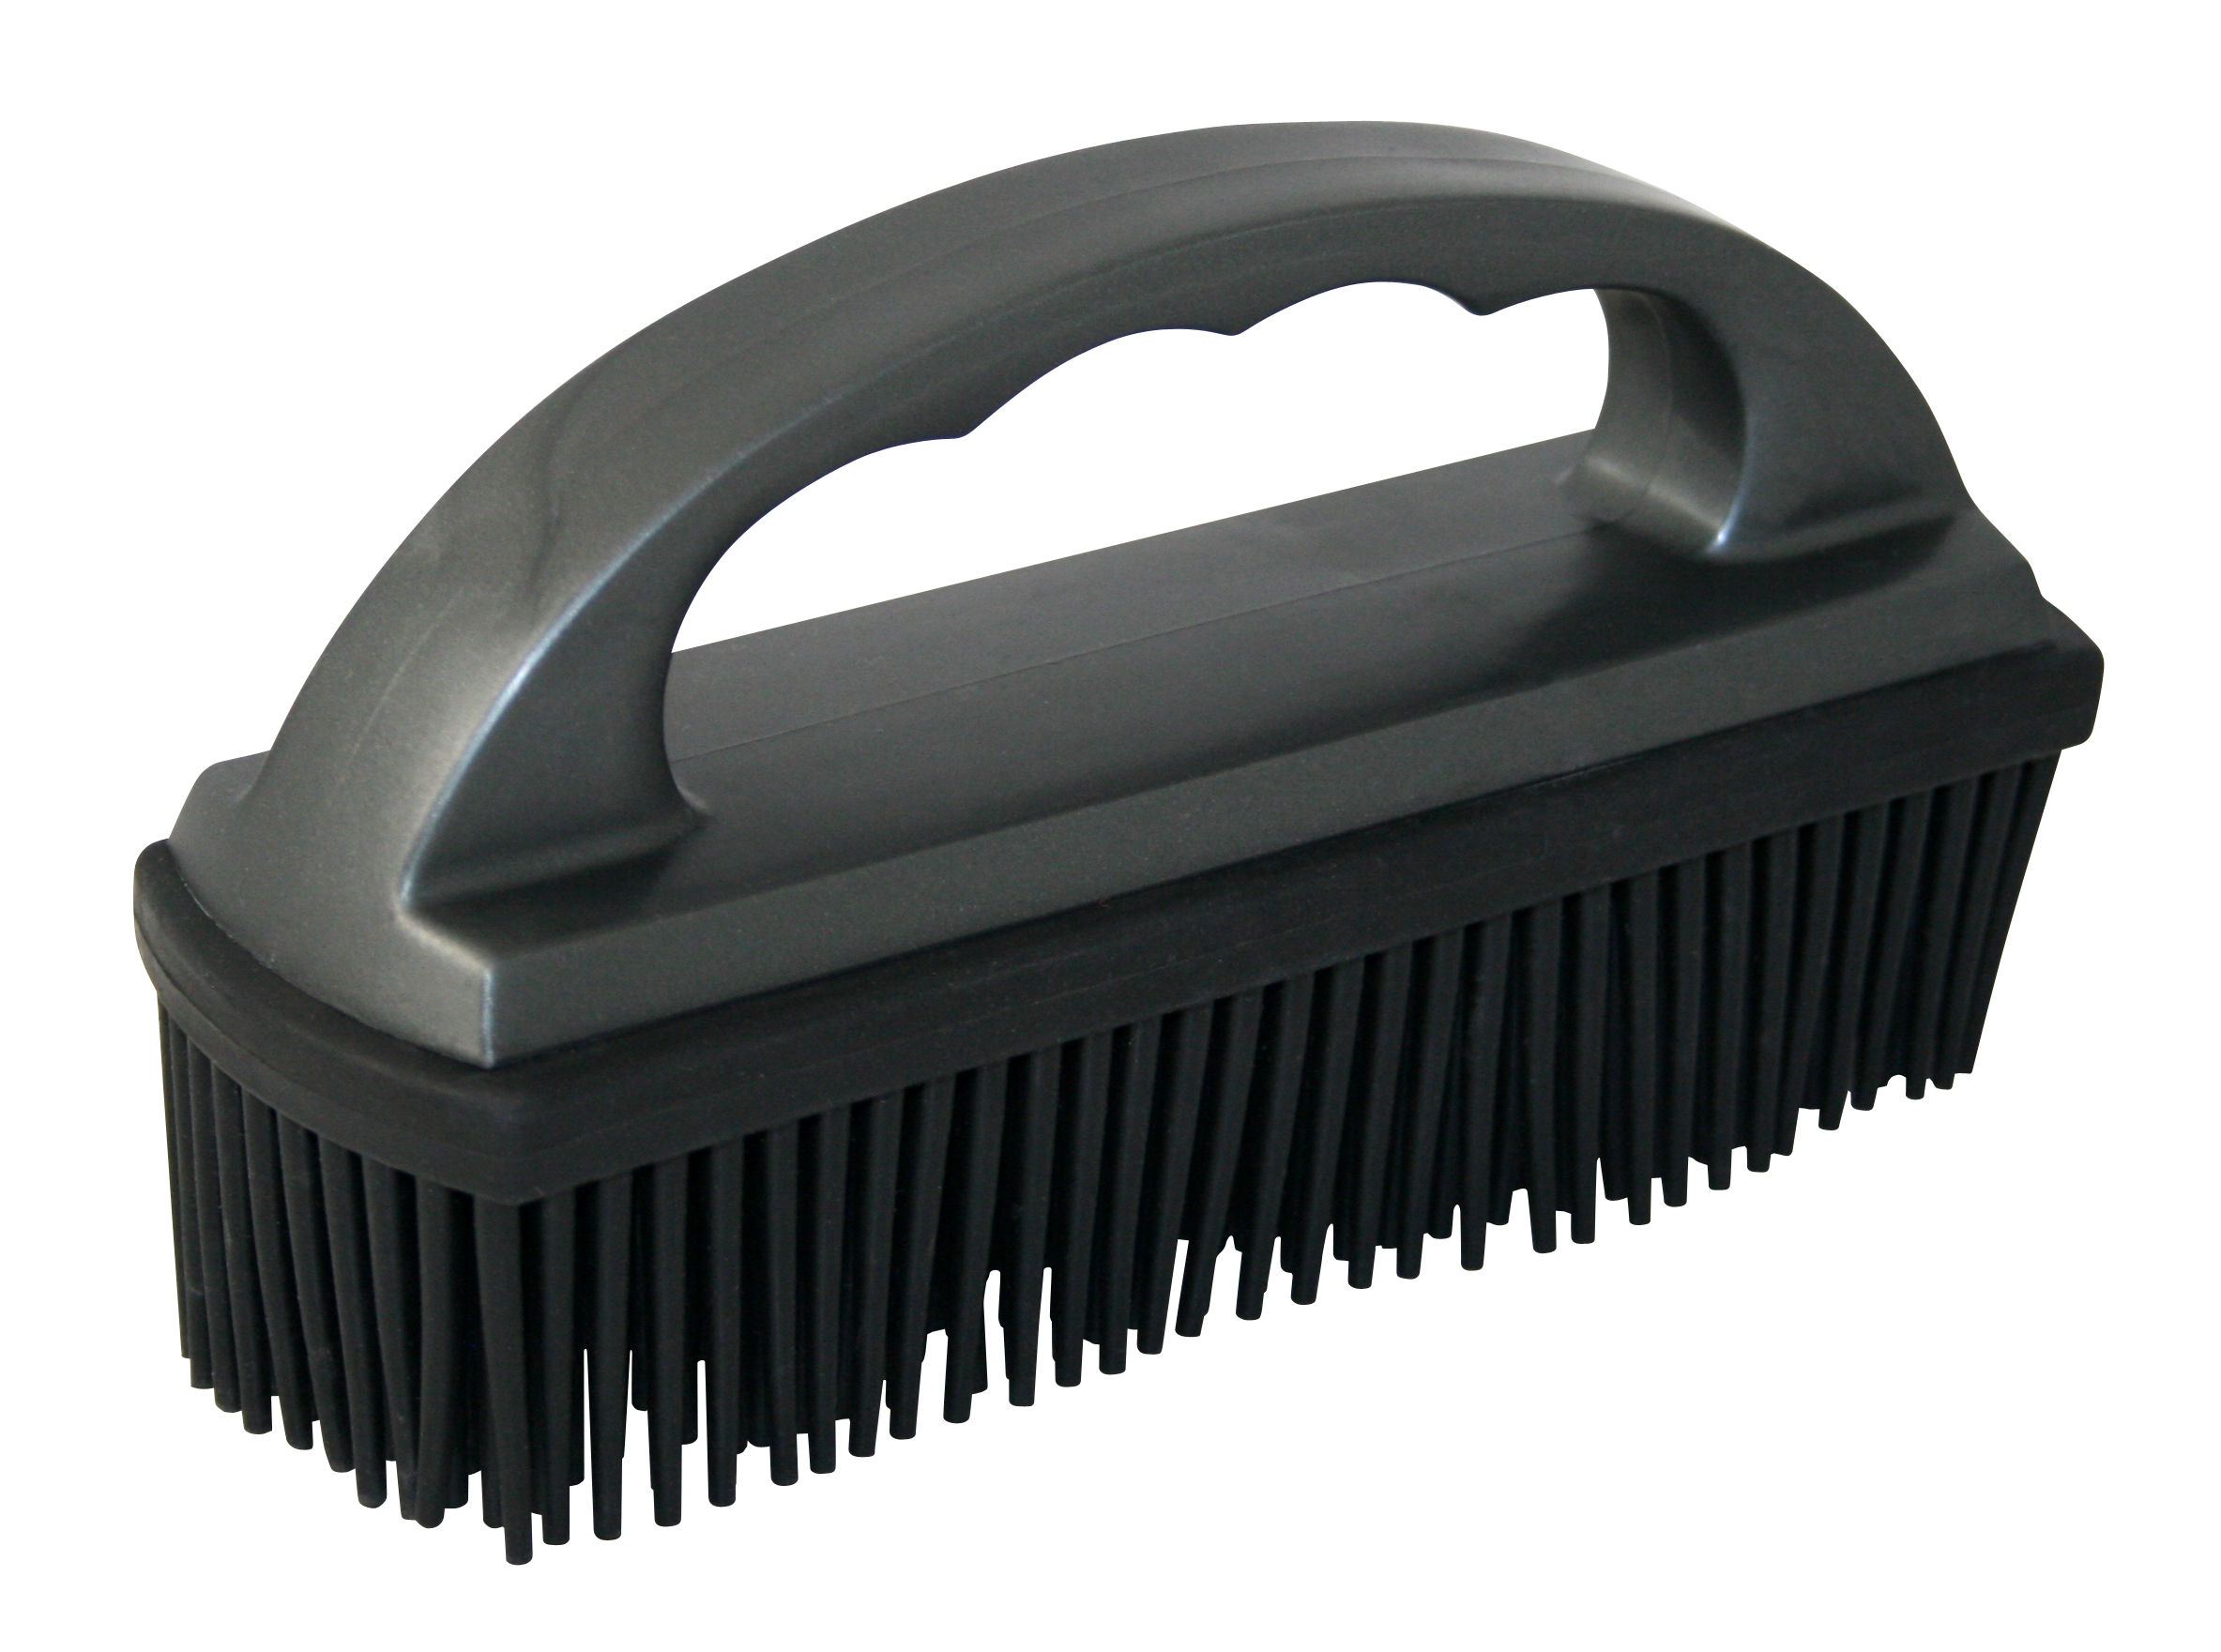 93112 Carrand Lint Brush Used For Upholstery And Carpets